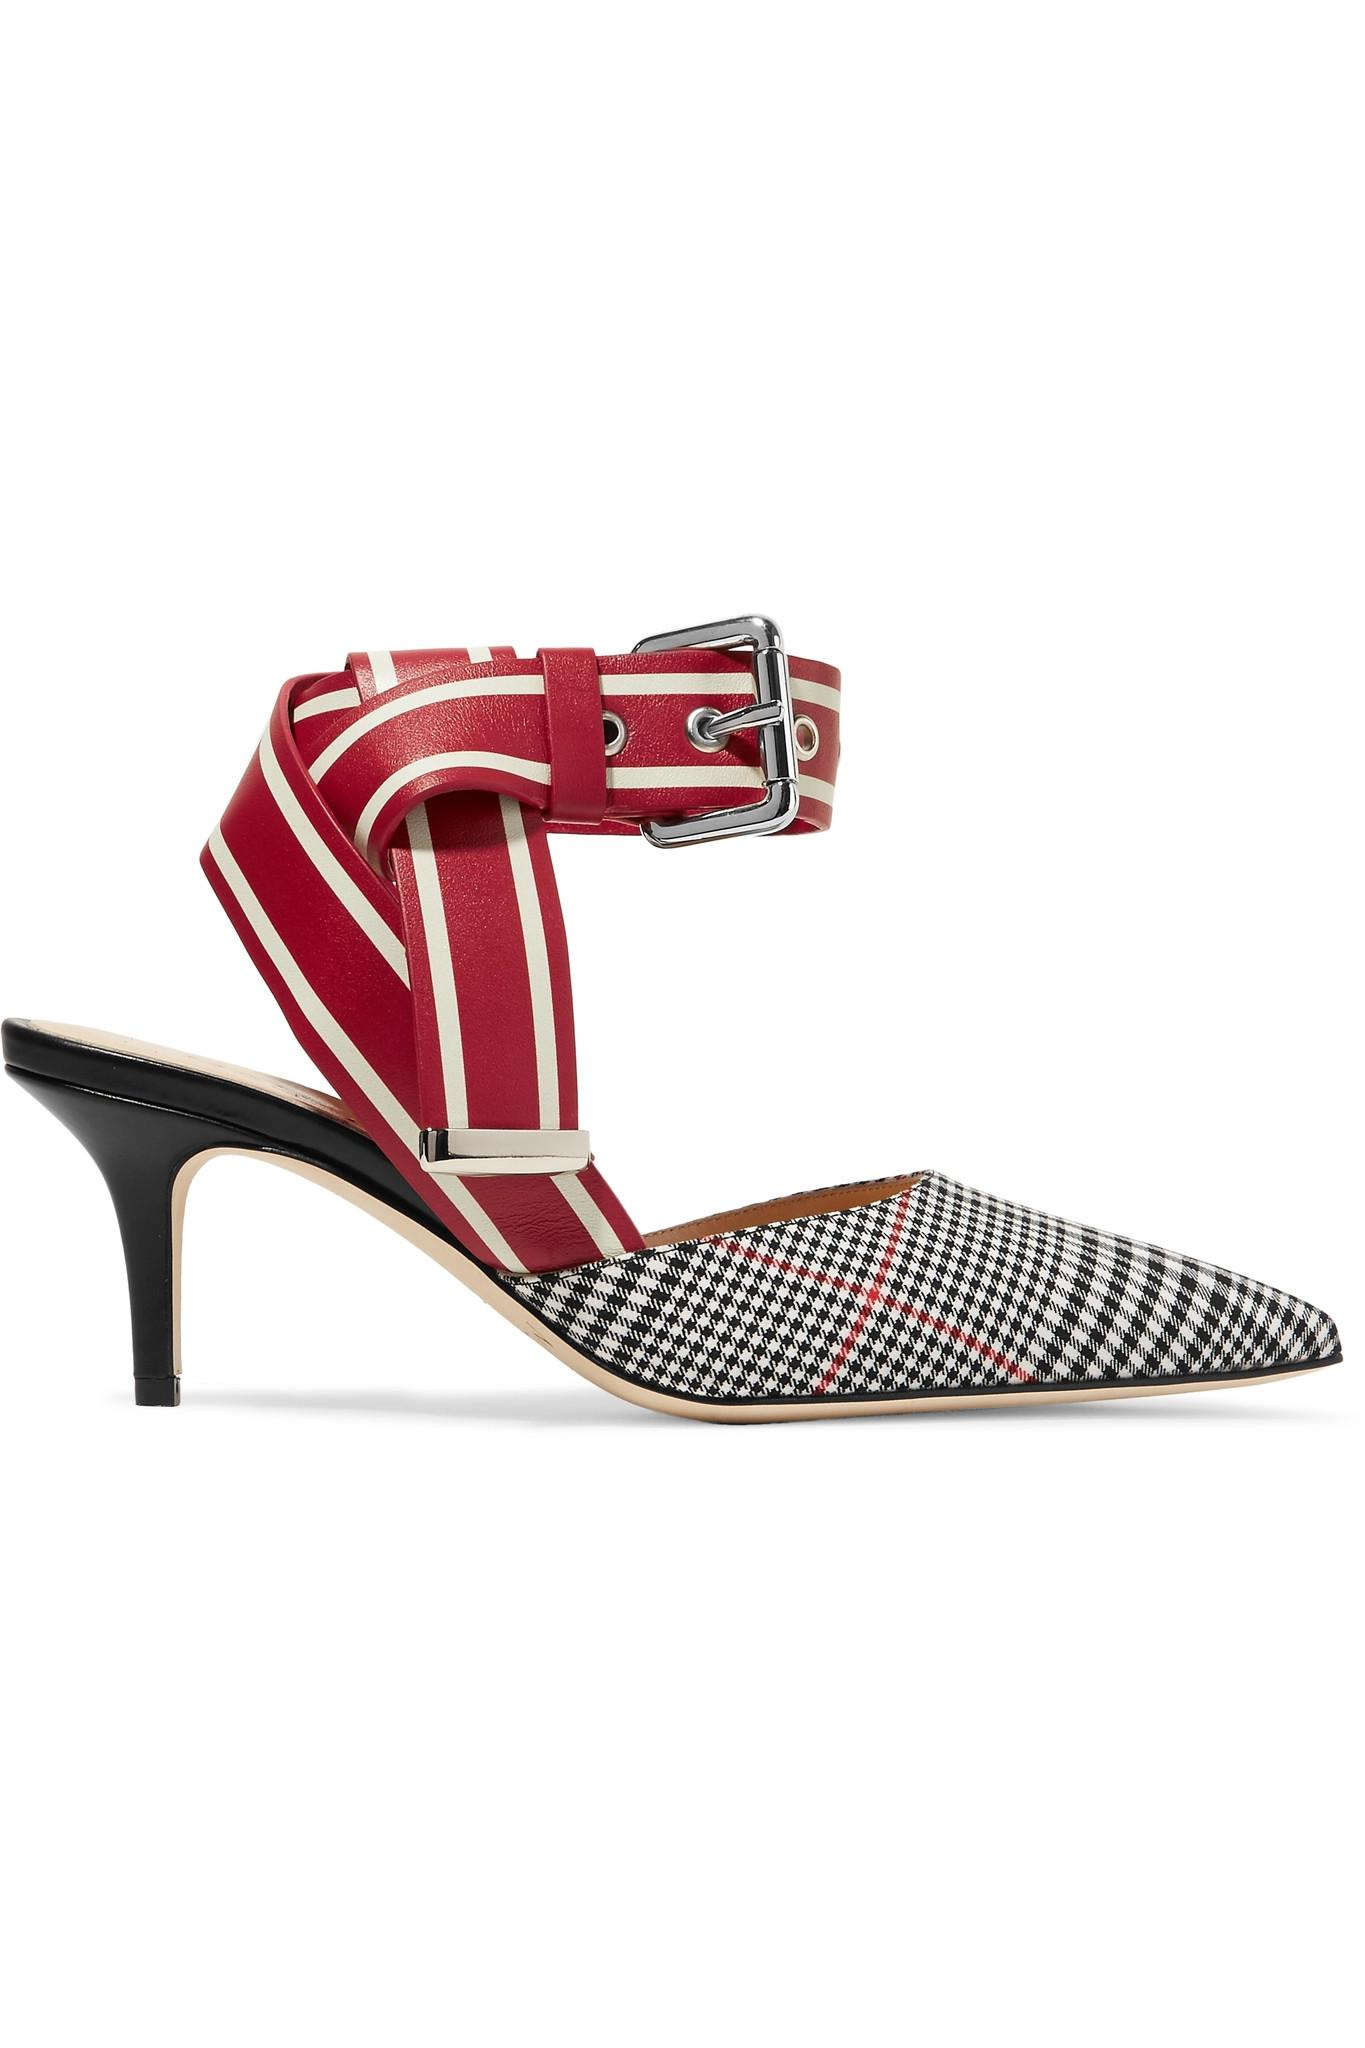 75a6a0fed2e Monse Leather And Prince Of Wales Checked Twill Pumps in Red - Lyst